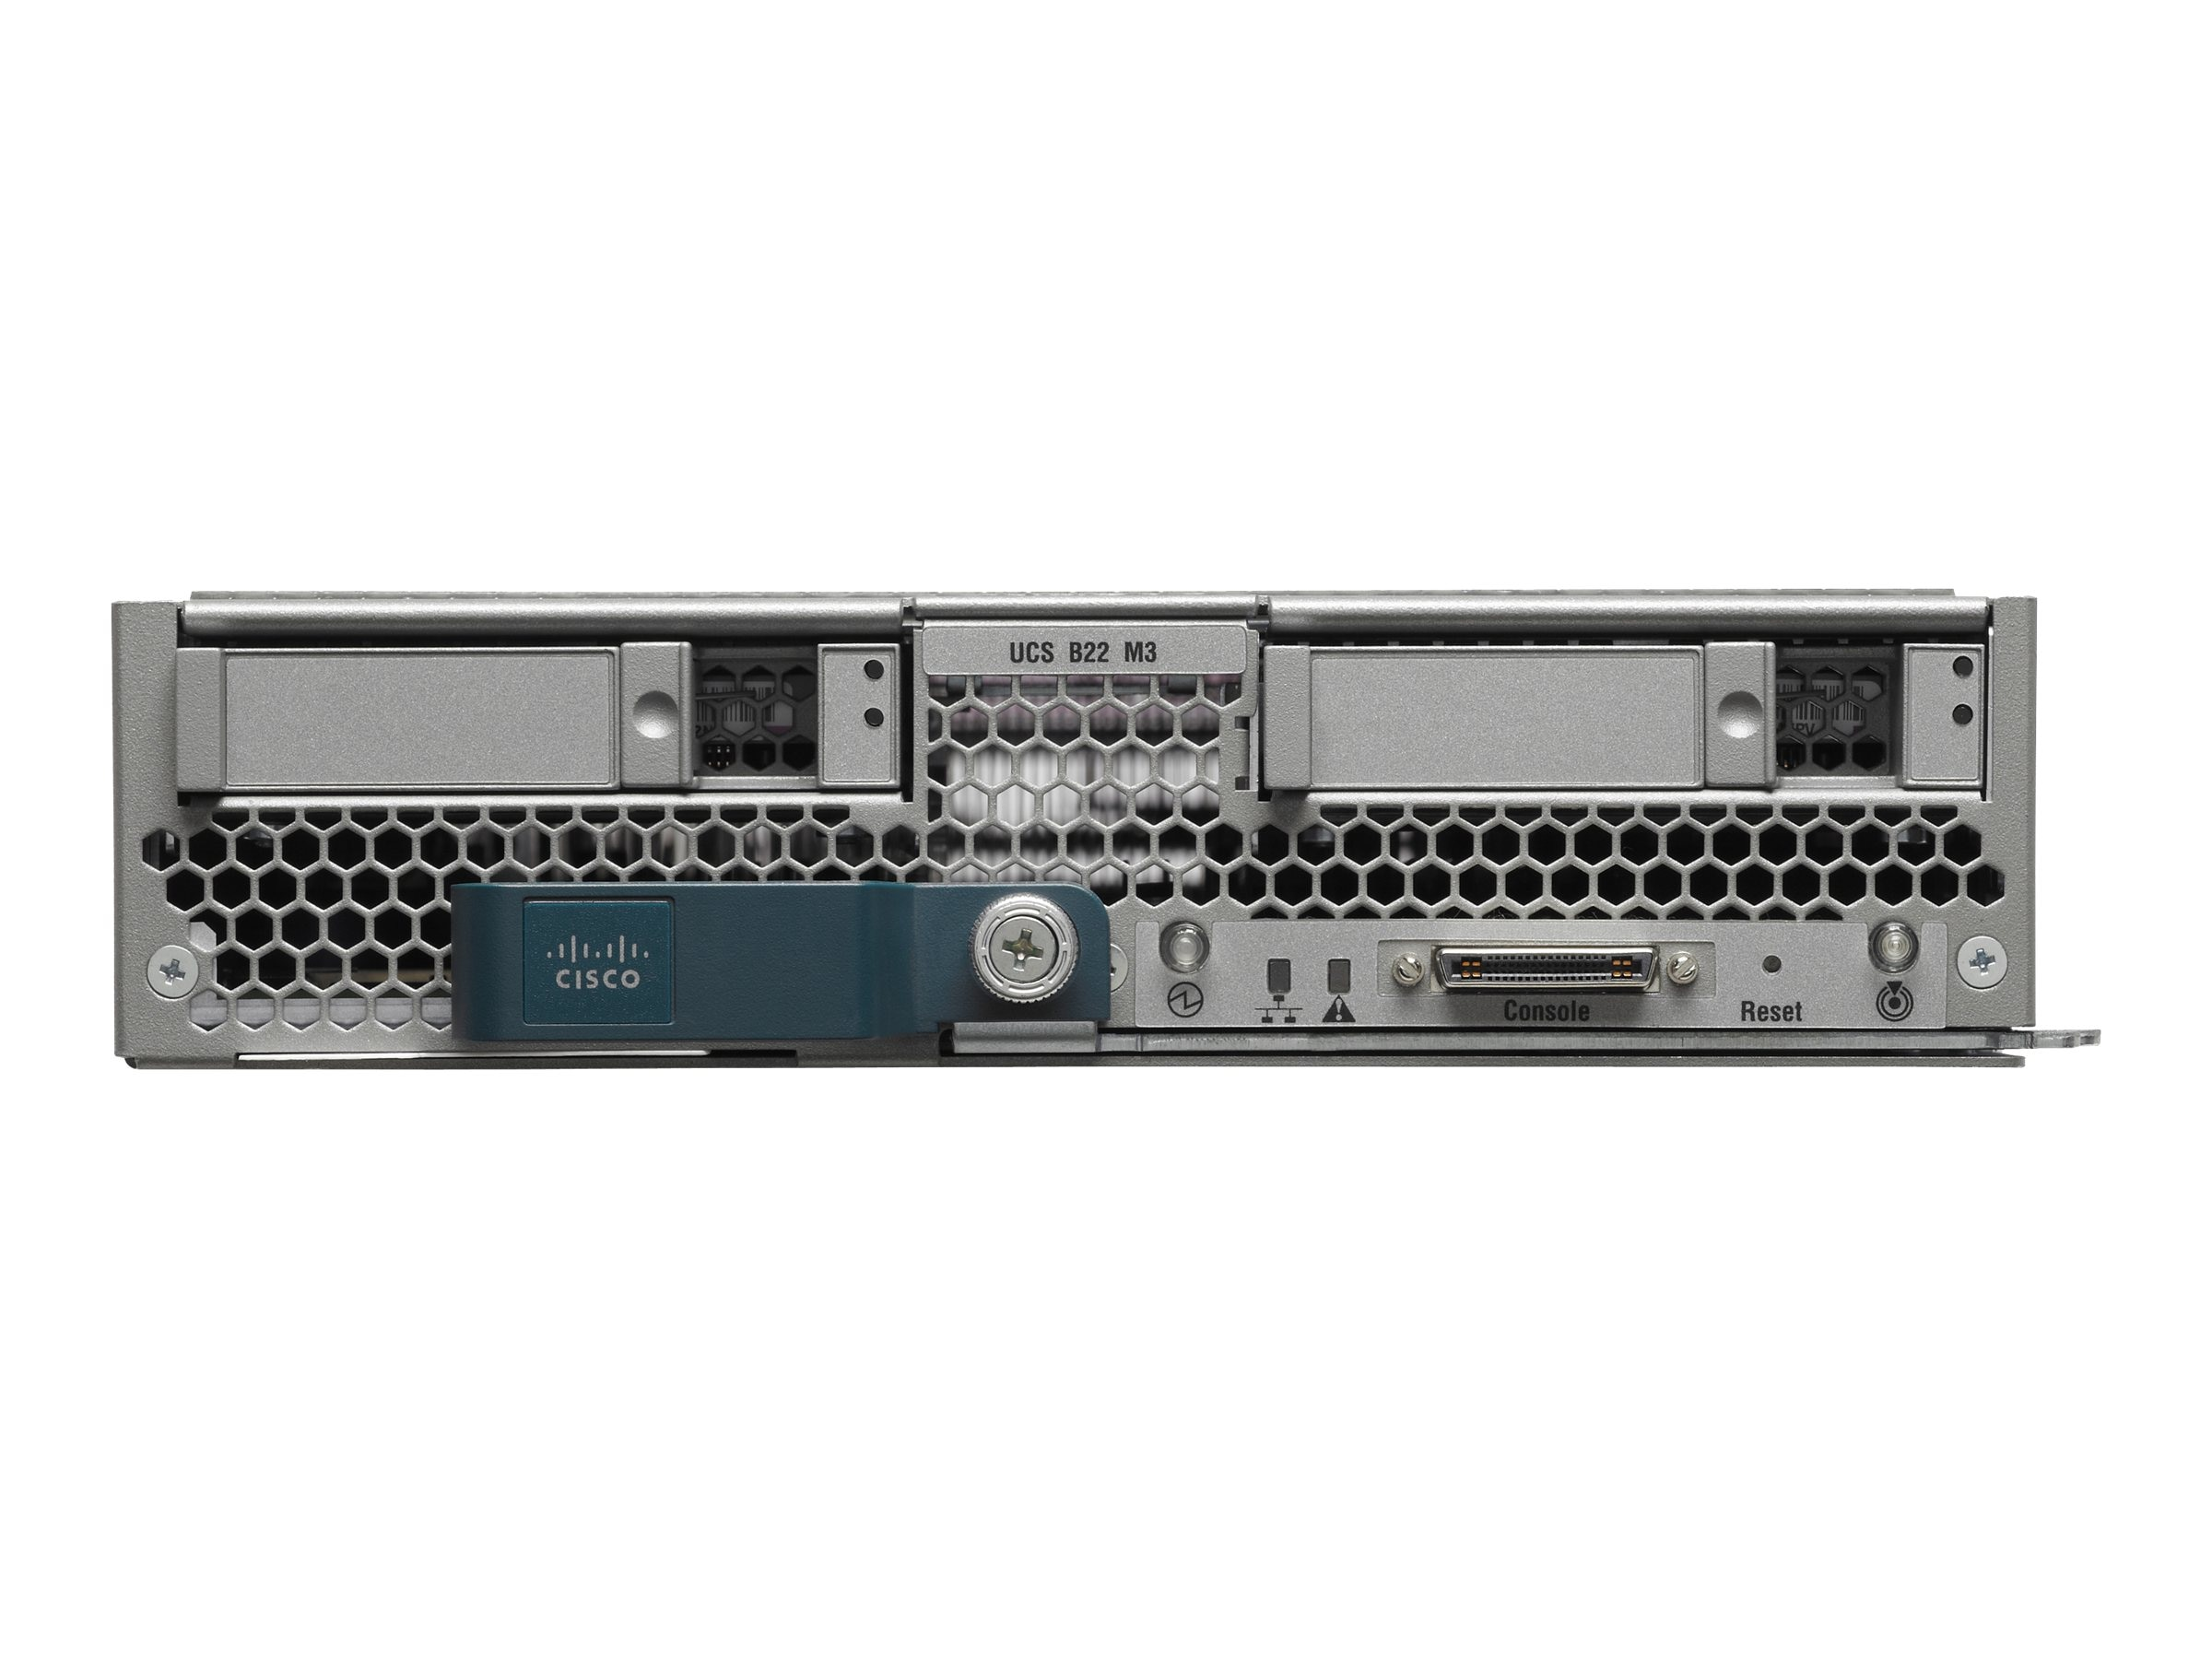 Cisco UCS B200 M3 Value SmartPlay Expansion (2x) Xeon E5-2640 v2 2.0GHz 128GB 2x2.5 Bays VIC1240